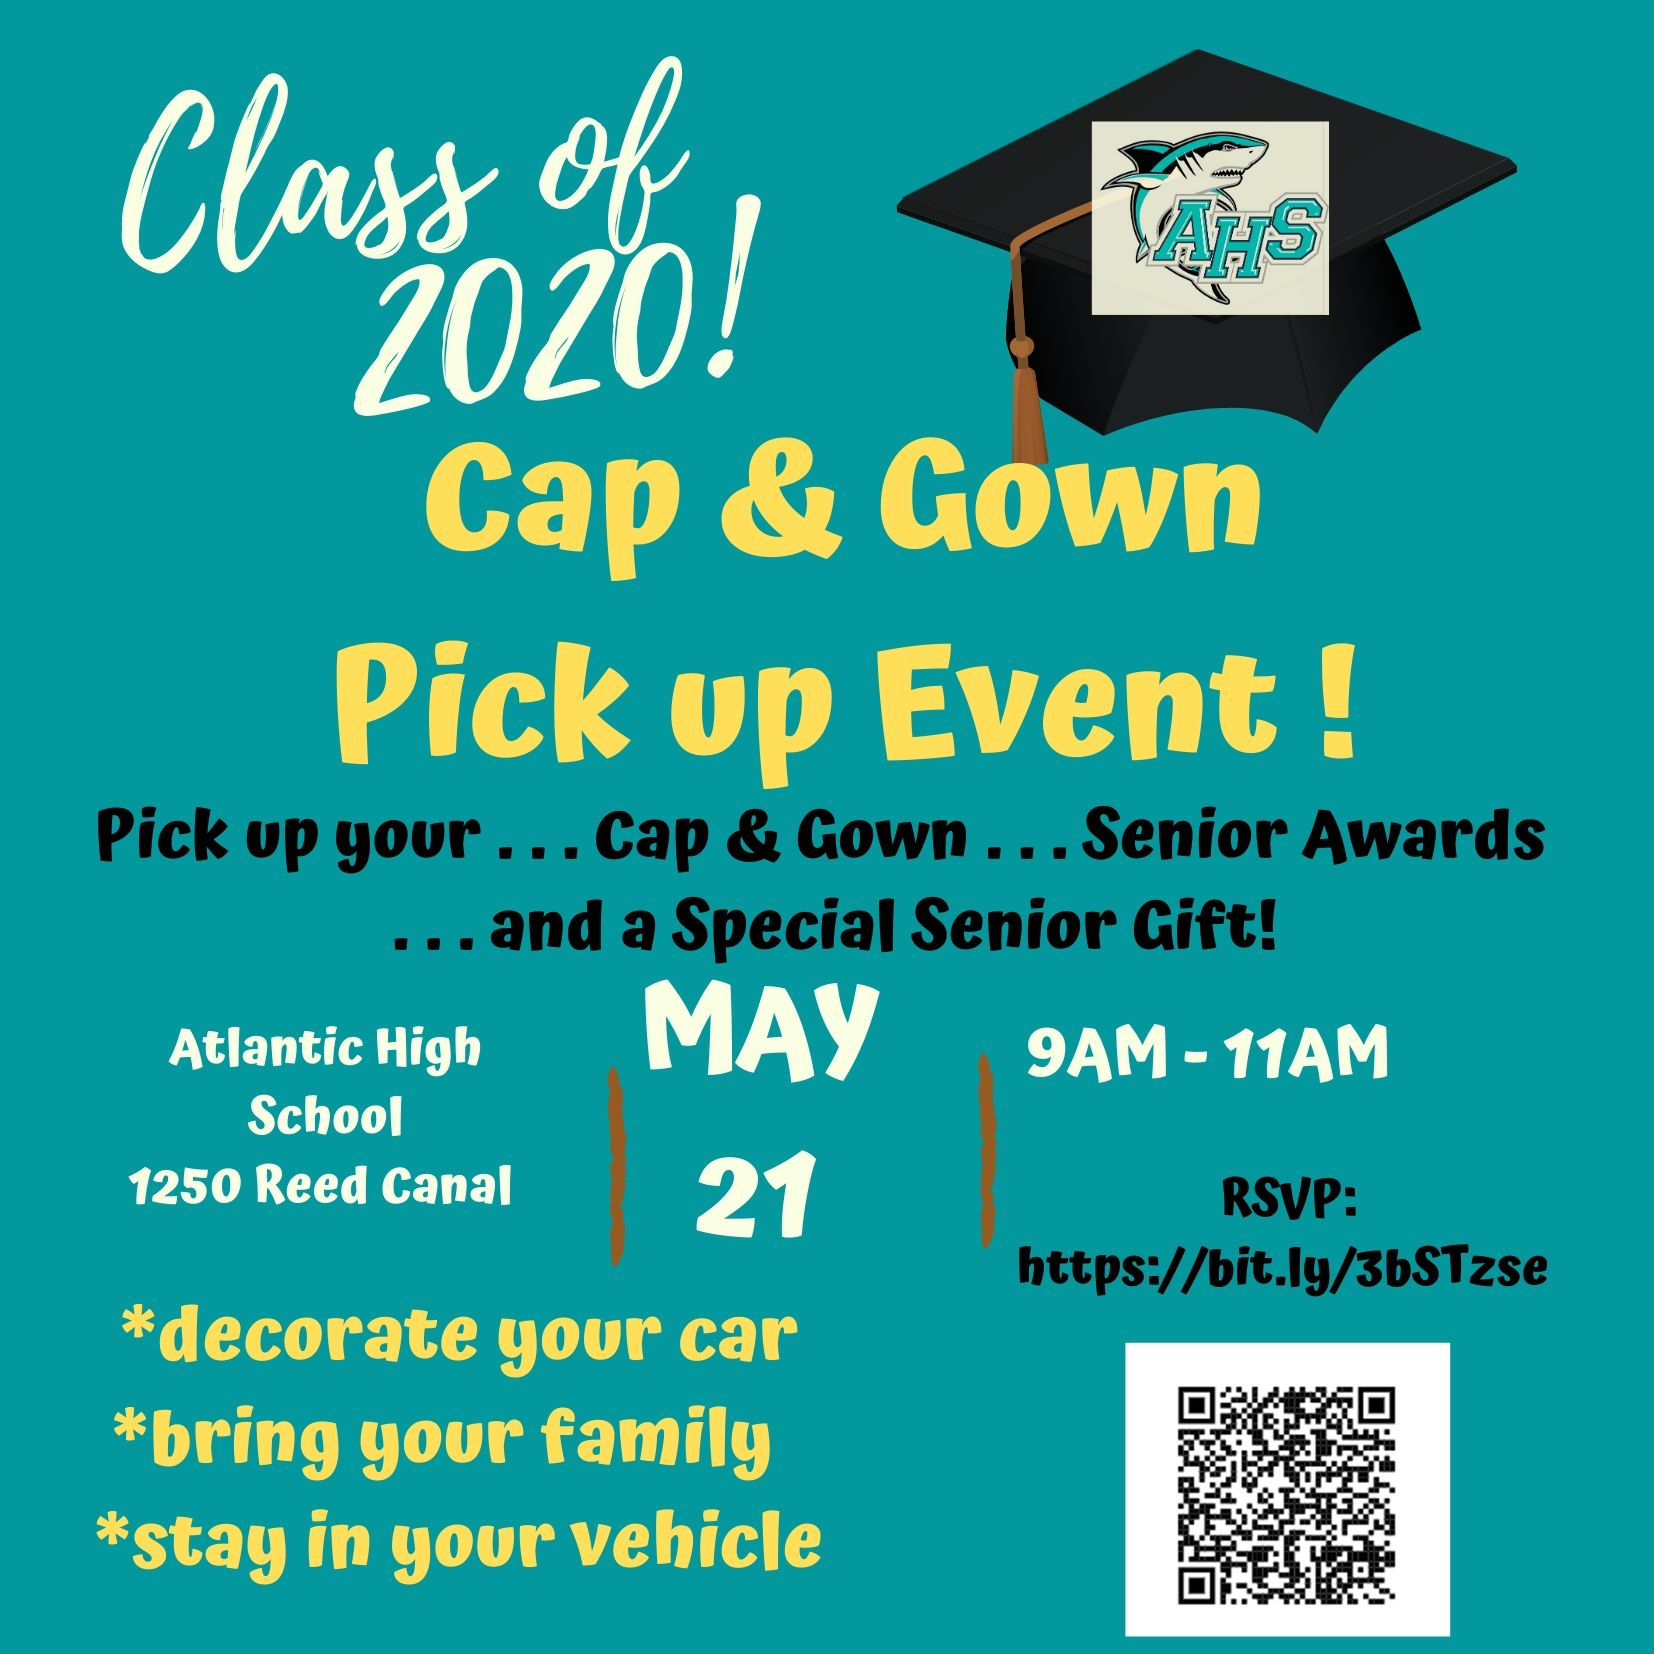 Cap & Gown distribution from 9am-11am